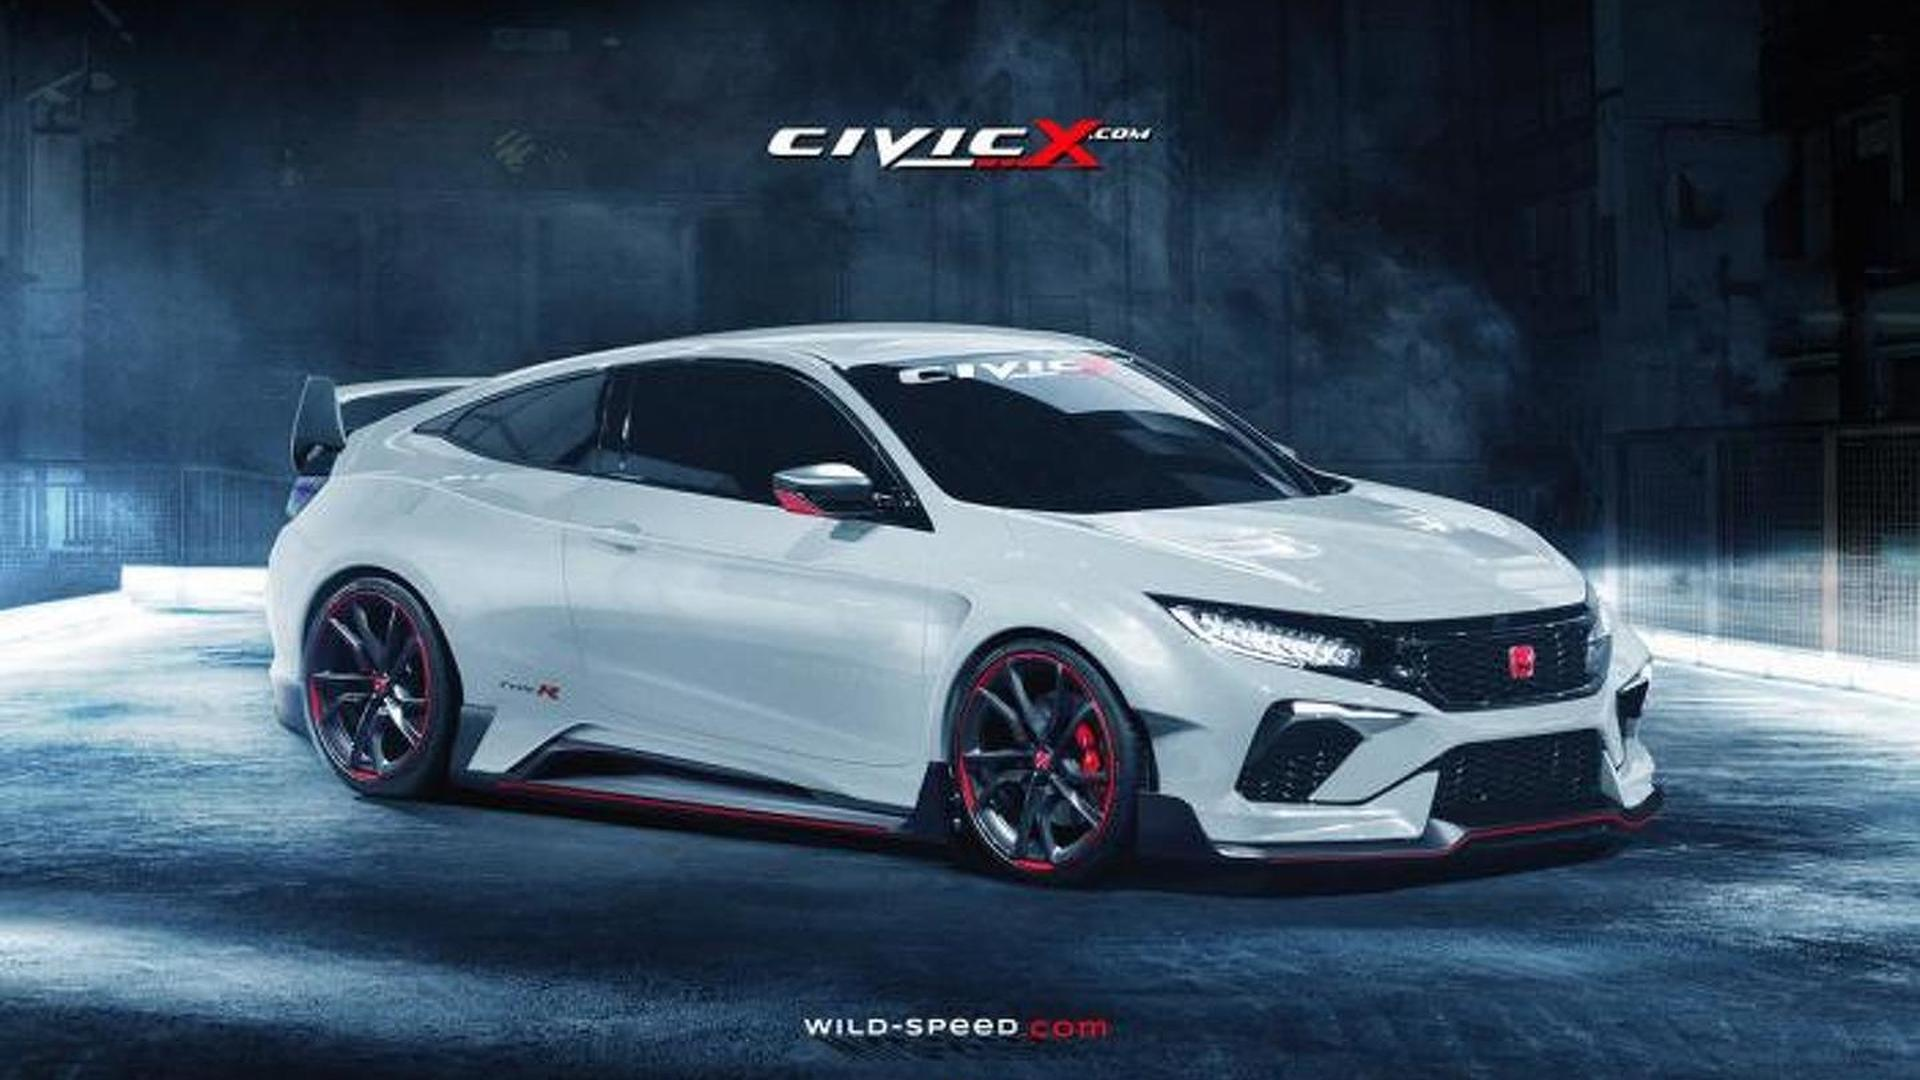 Honda Civic Type R Coupe renders show stunning design